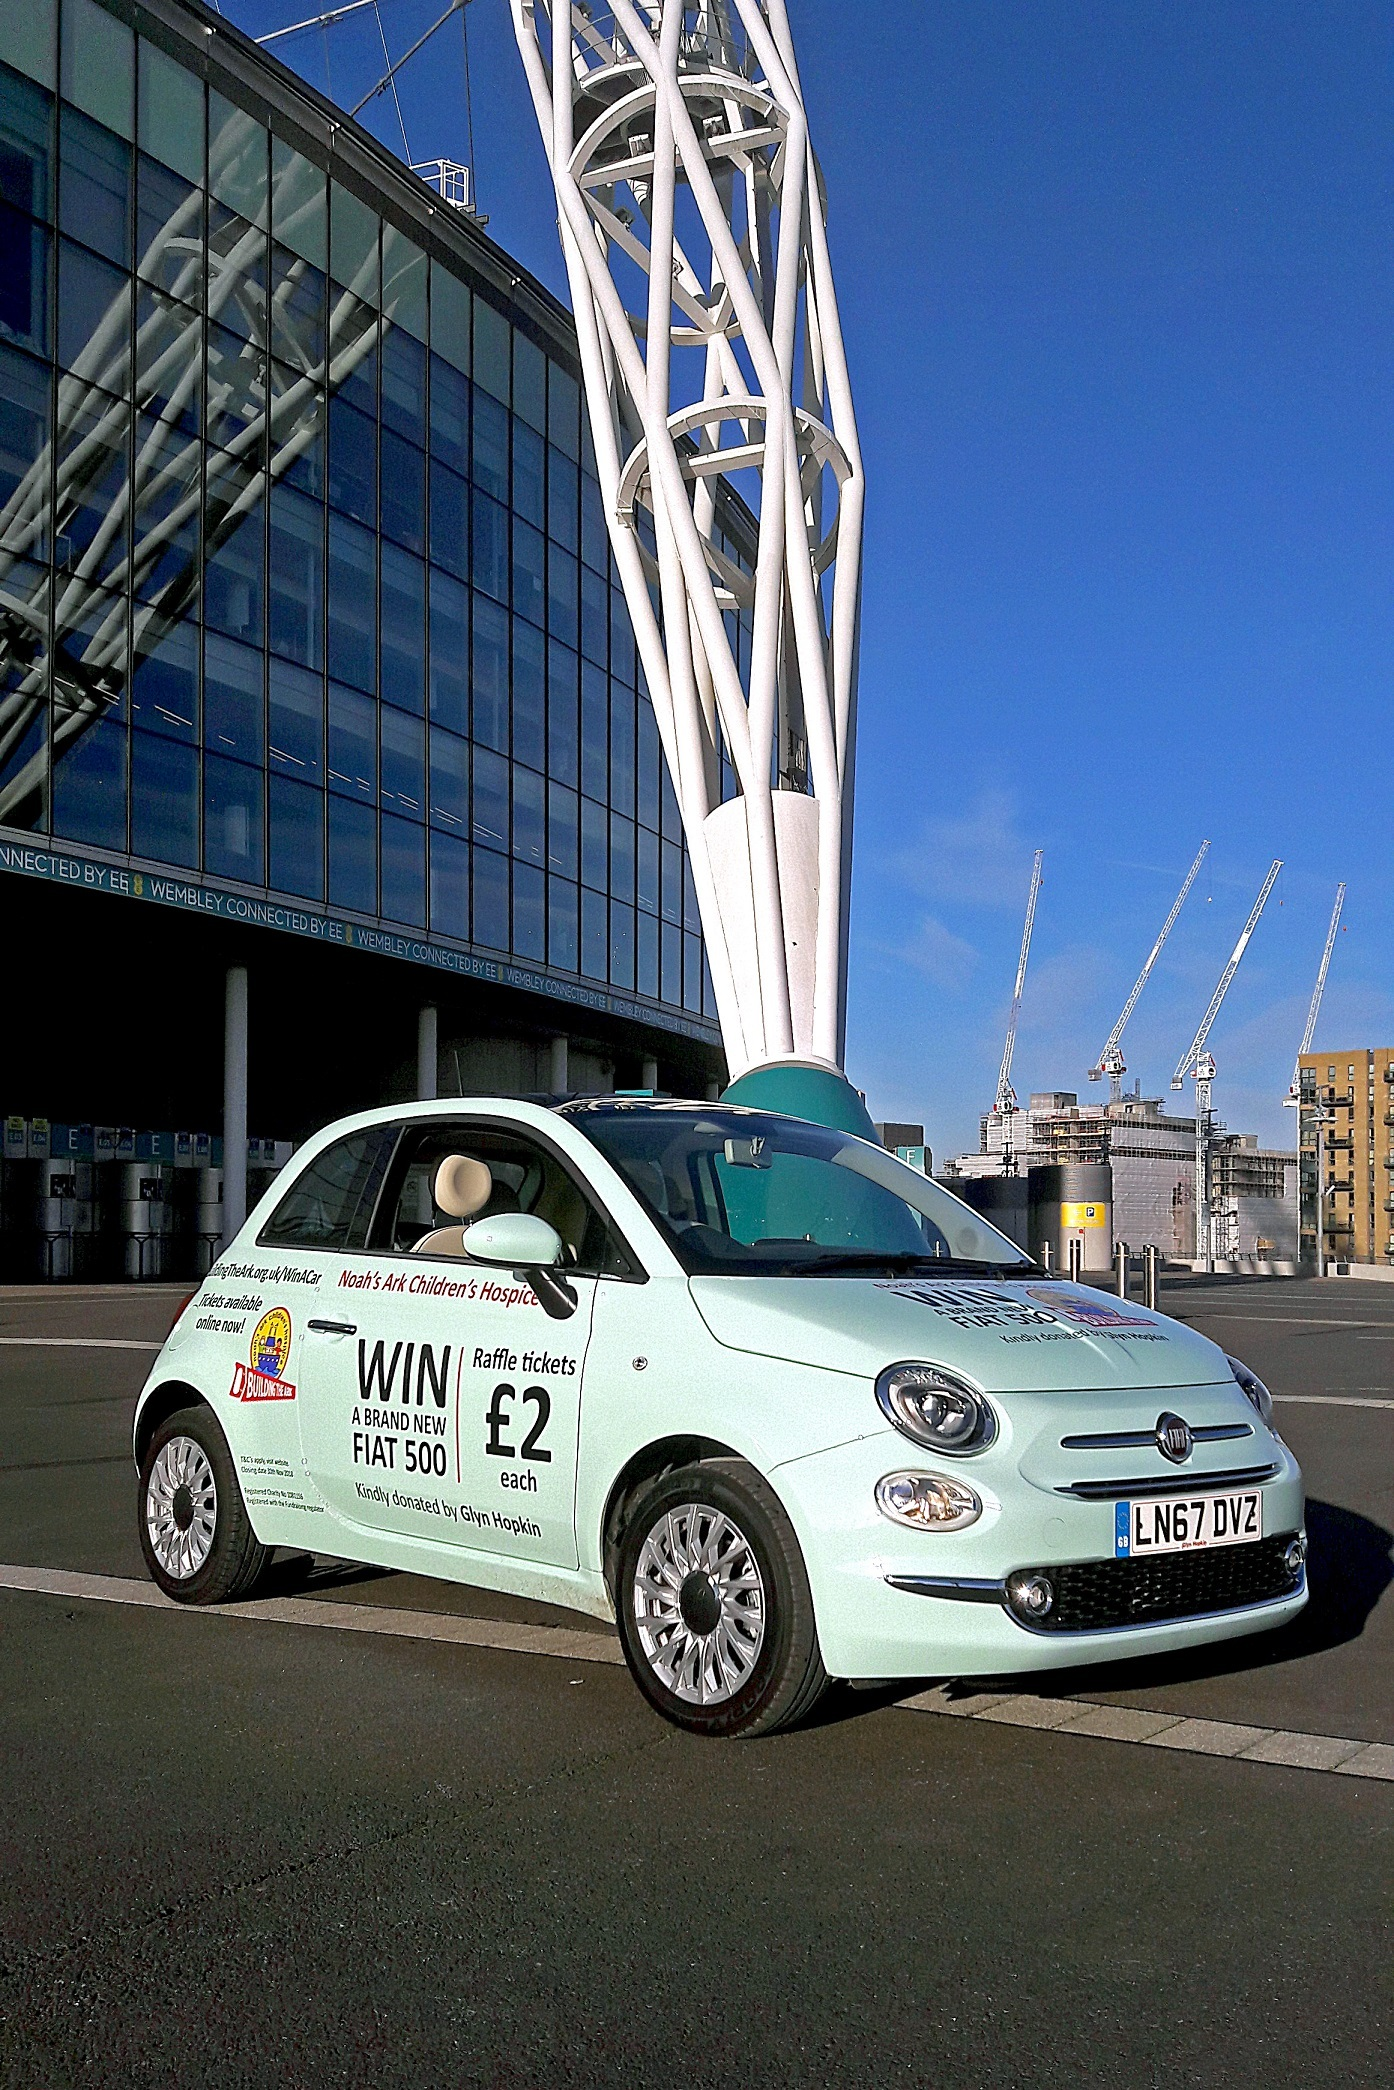 The Fiat 500, worth £11,000, to be won in the Noah's Ark Children's Hospice raffle